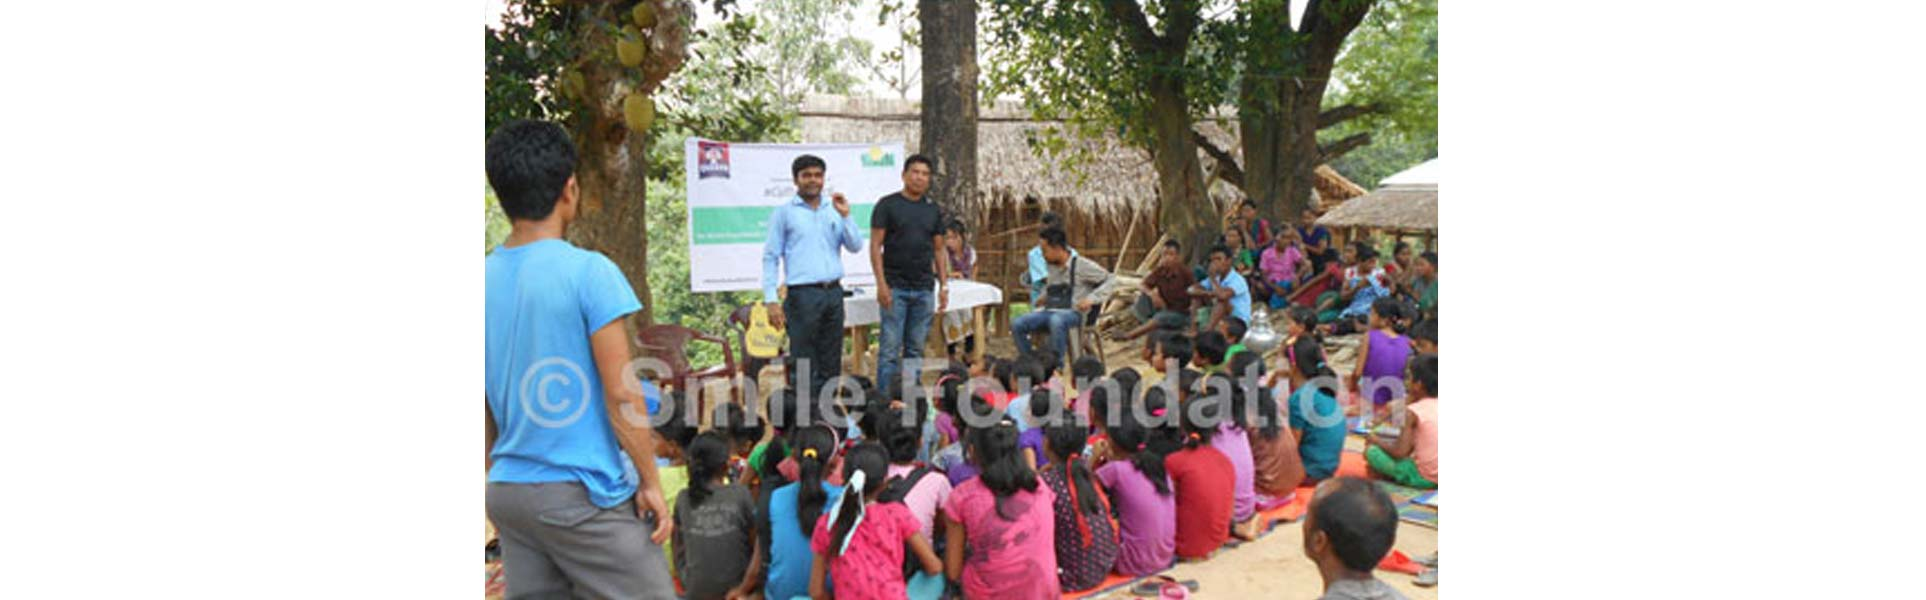 Awareness Campaign for education held for people in remote area